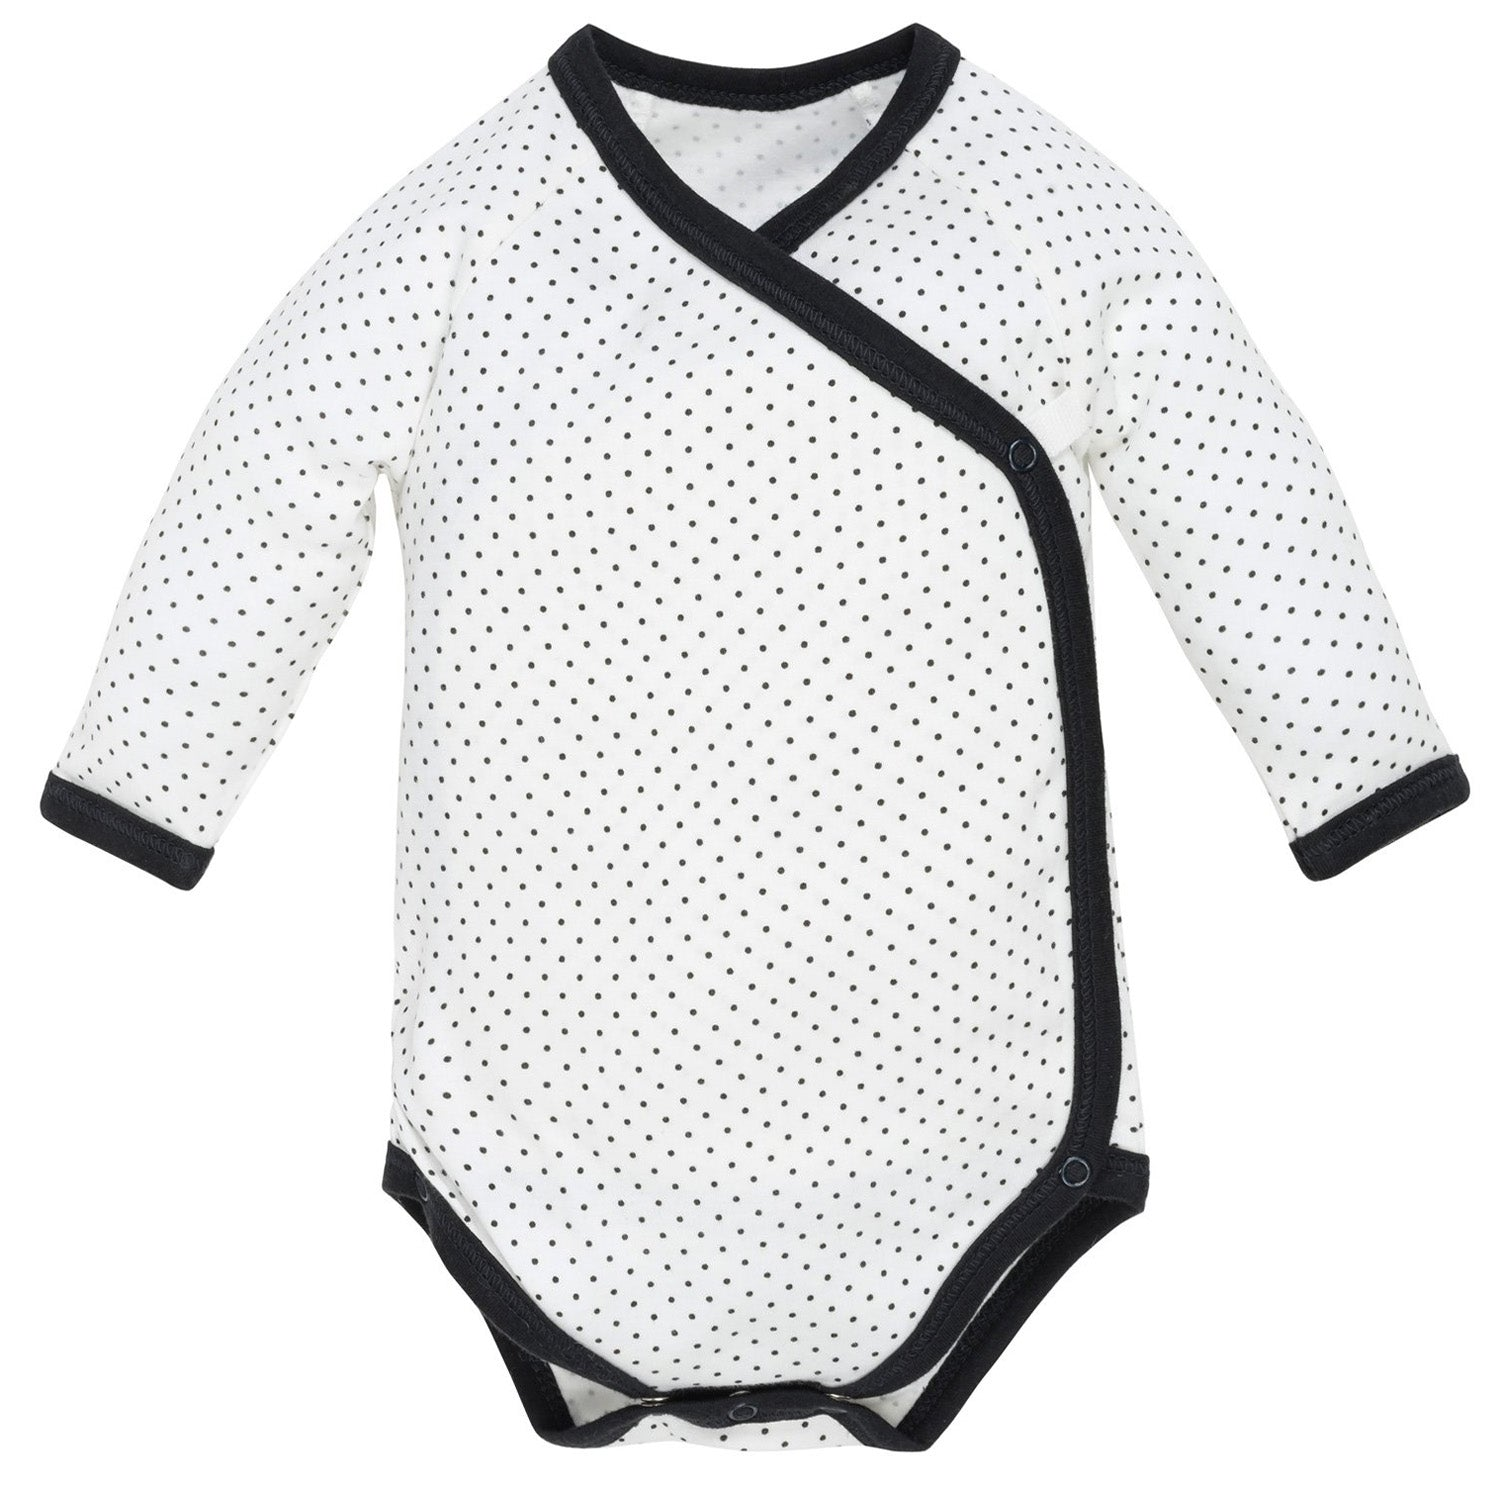 Under the Nile Organic Long Sleeve Side Snap Bodysuit - Polka Dot